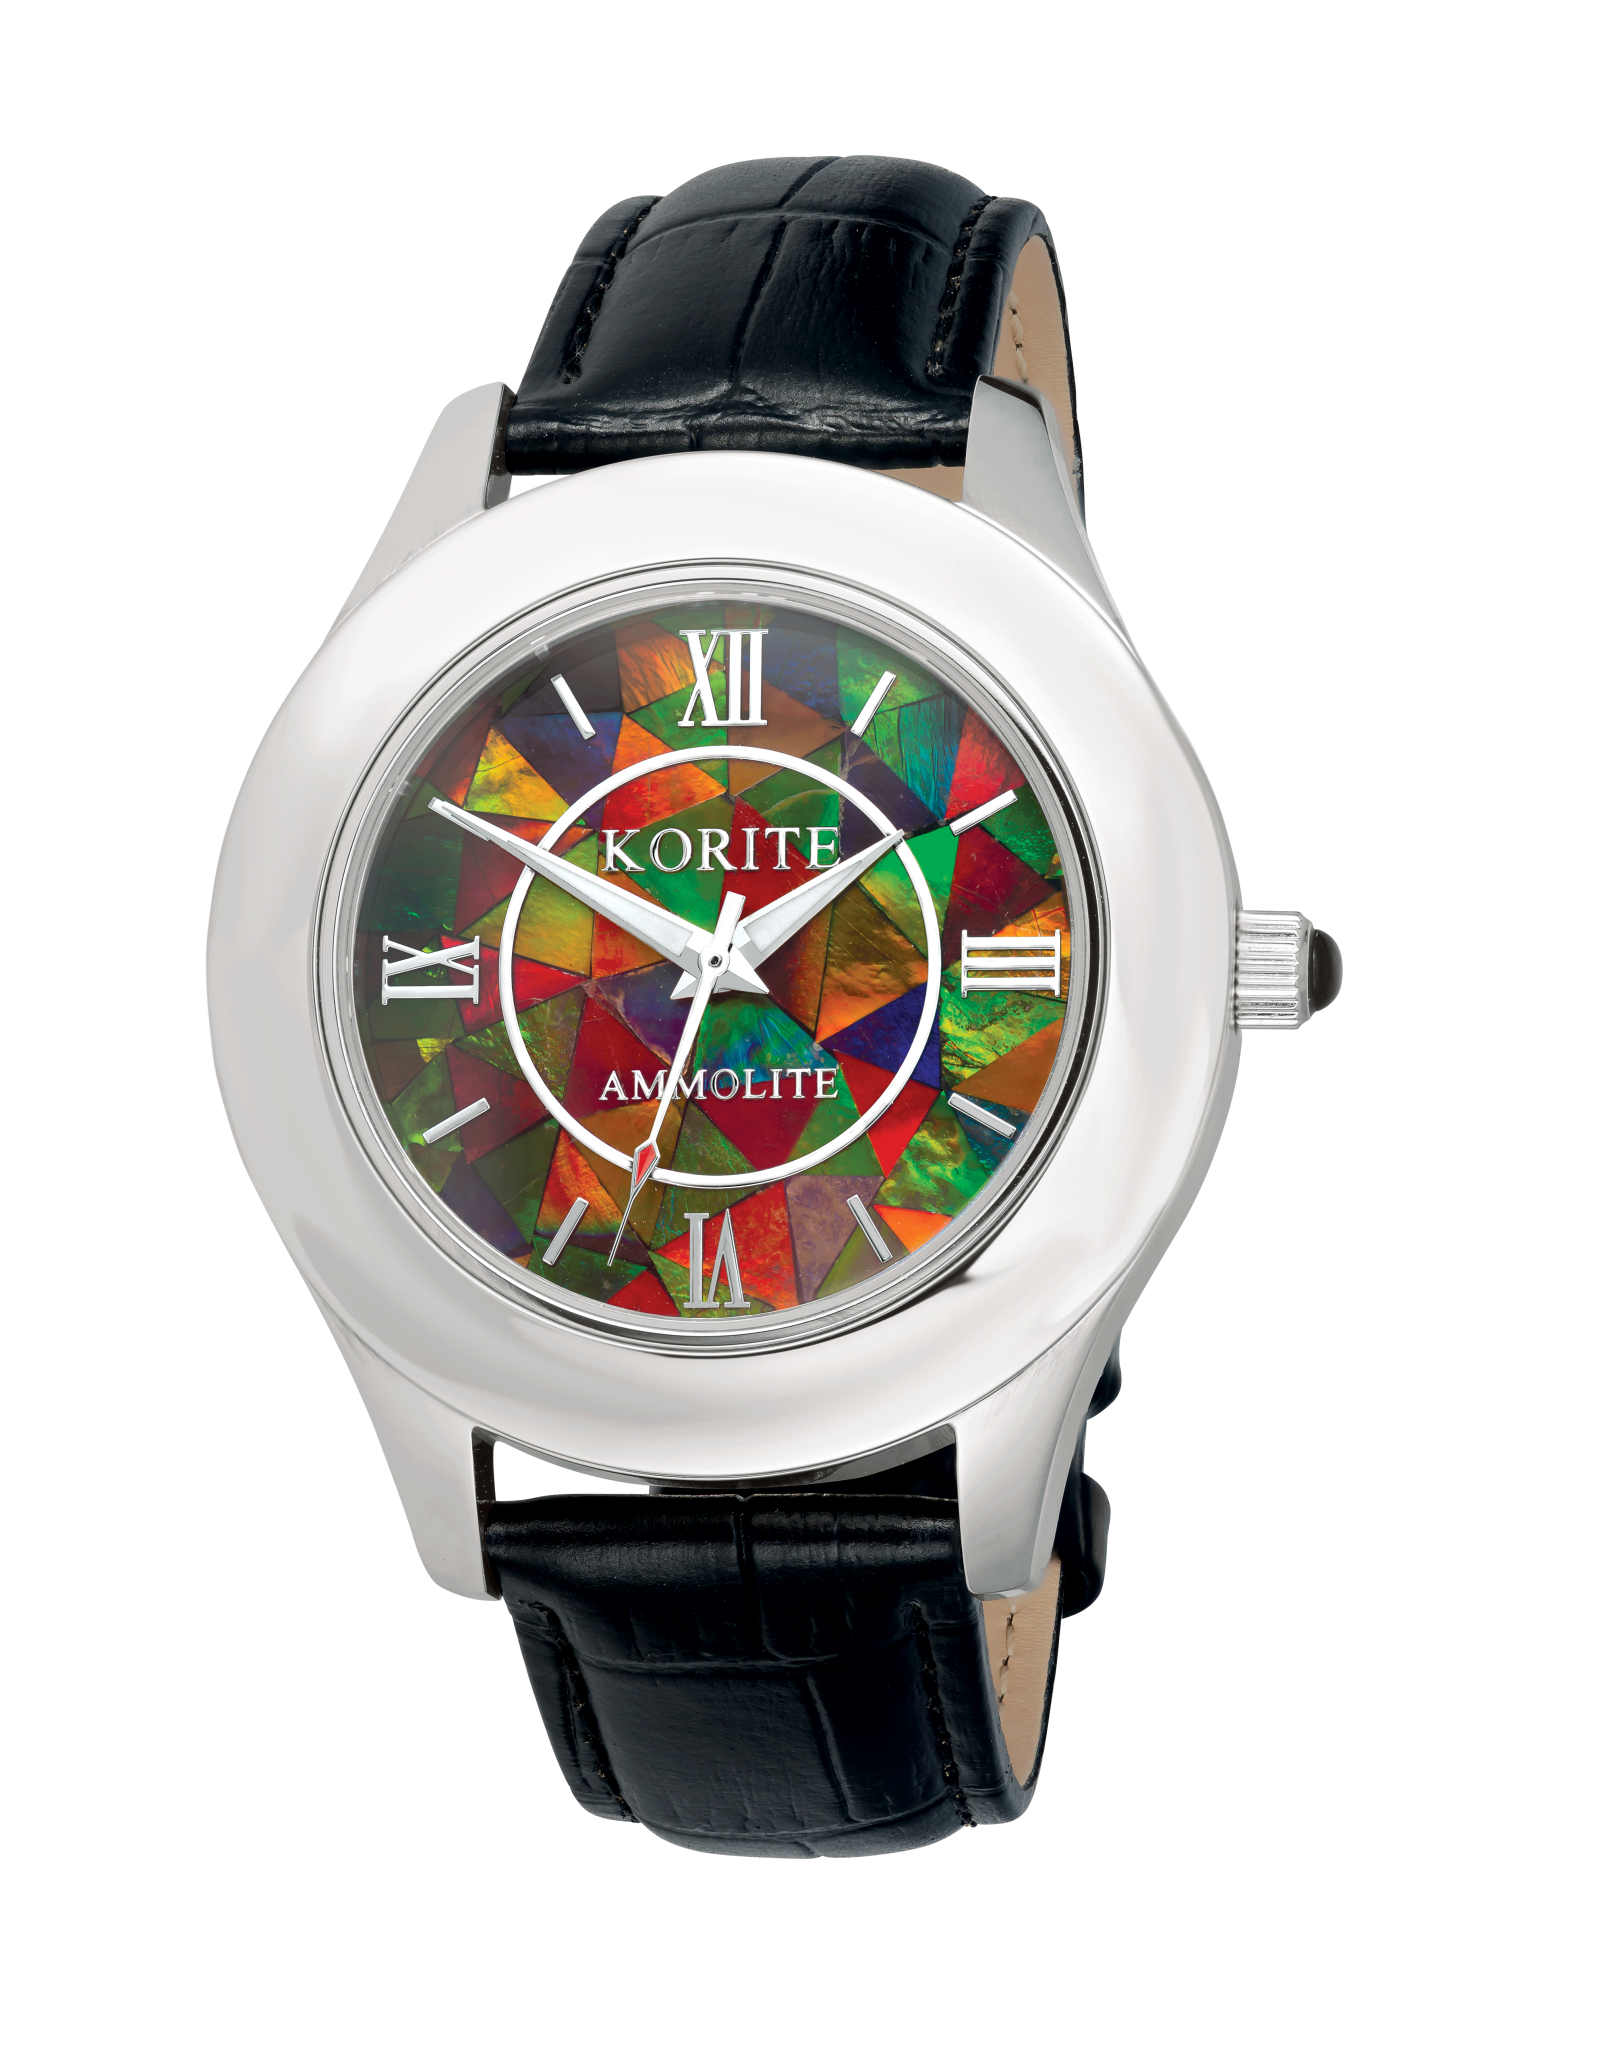 Ammolite Harry Watch - A893MBL